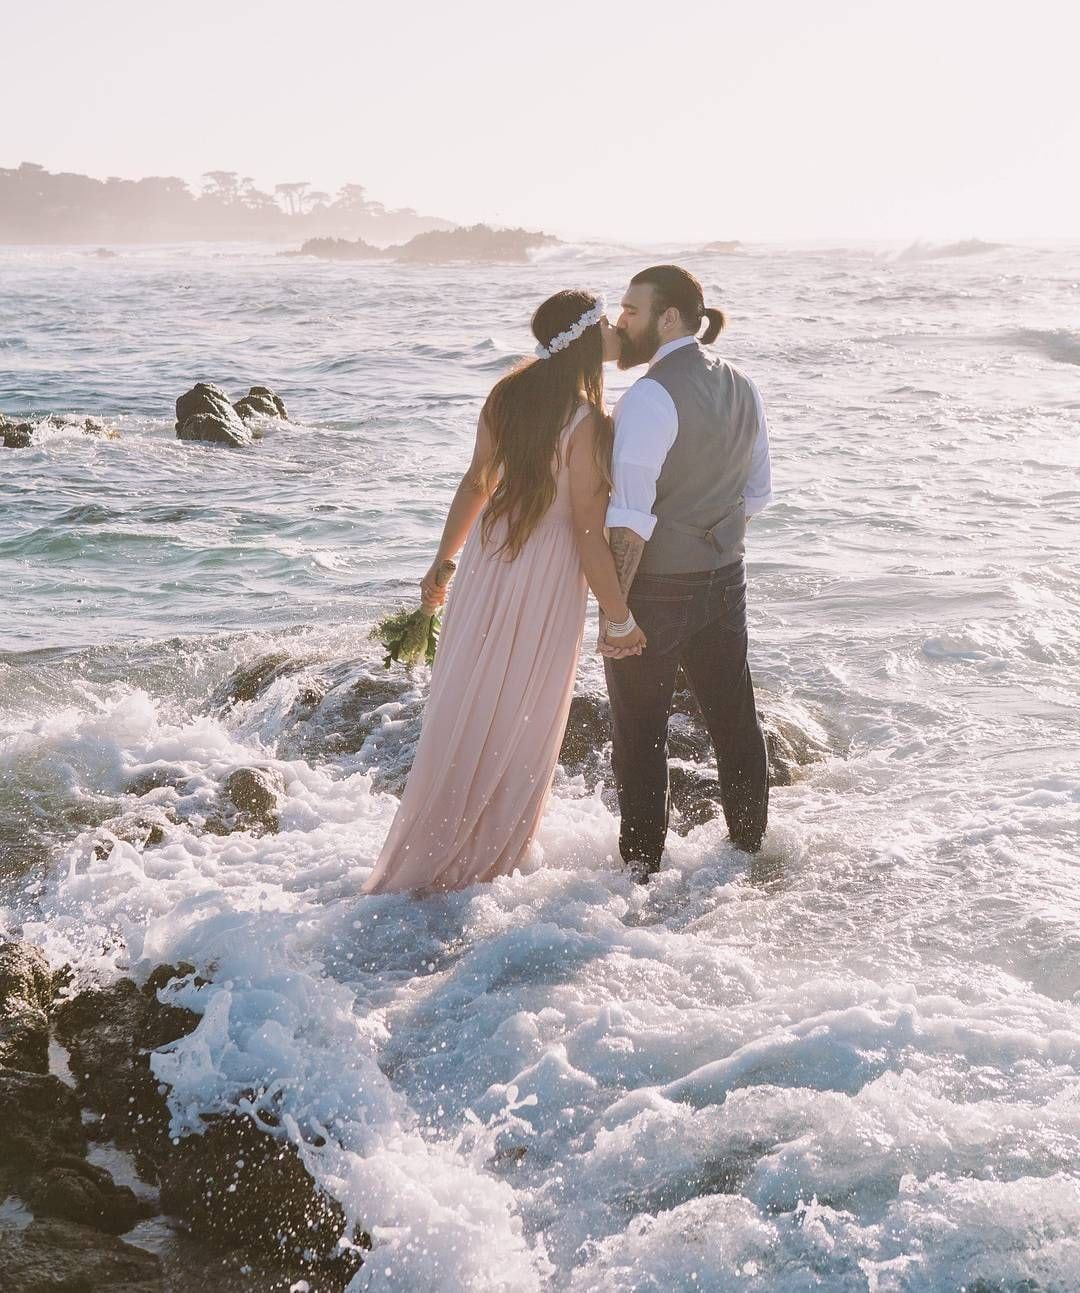 A Practical Wedding: How To Plan The Perfect Beach Wedding